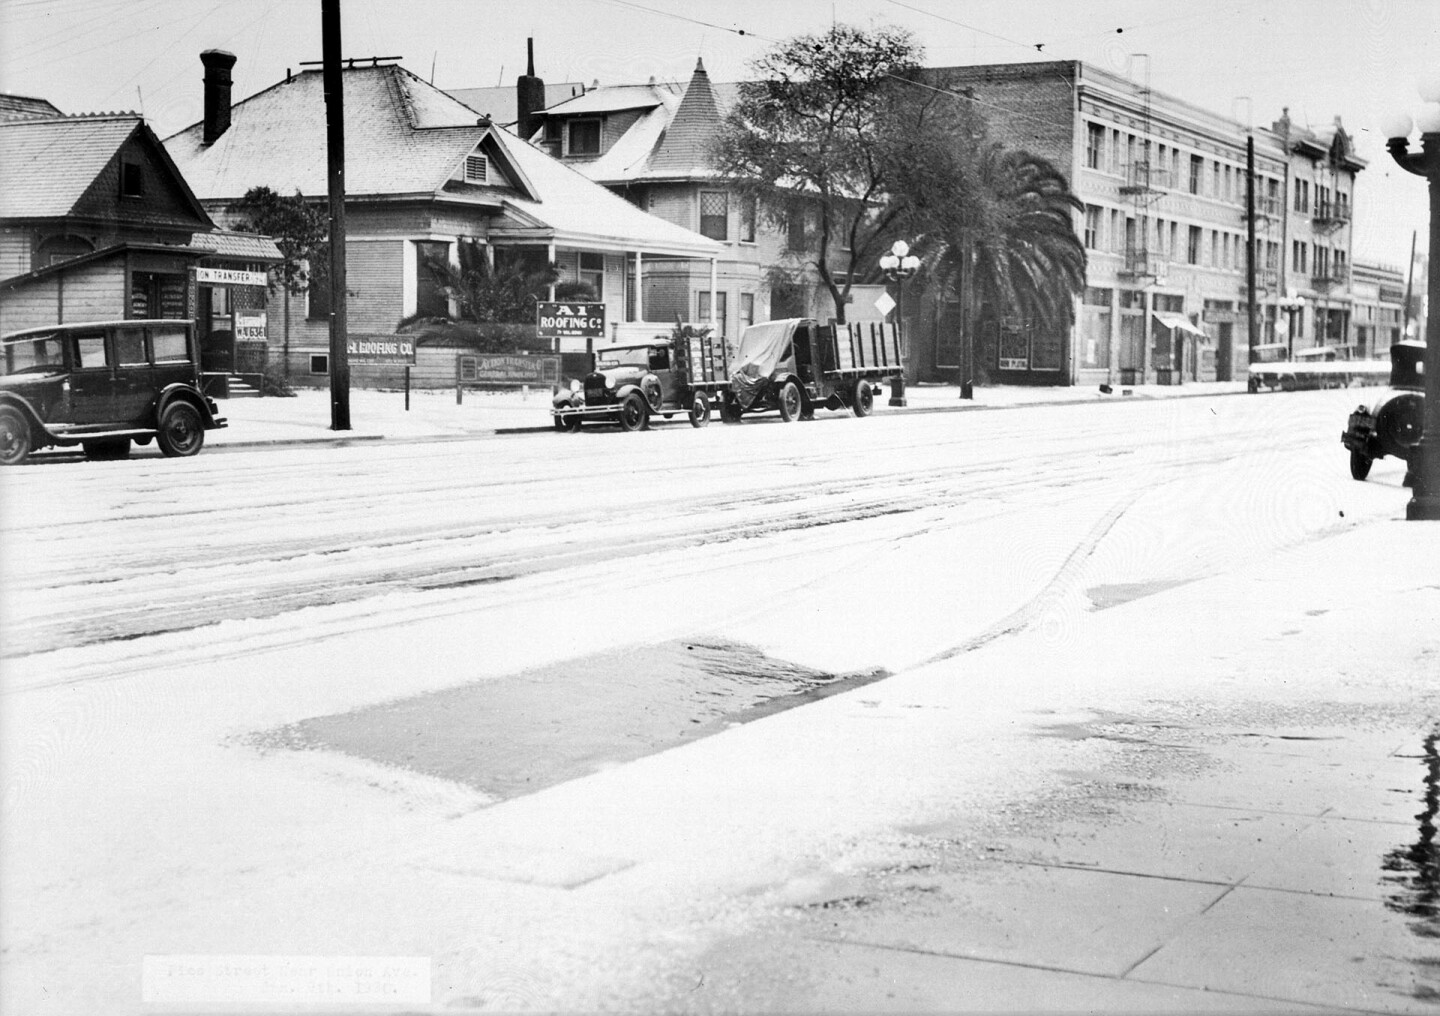 Snow on L.A.'s Pico Boulevard, looking east from Union in 1930